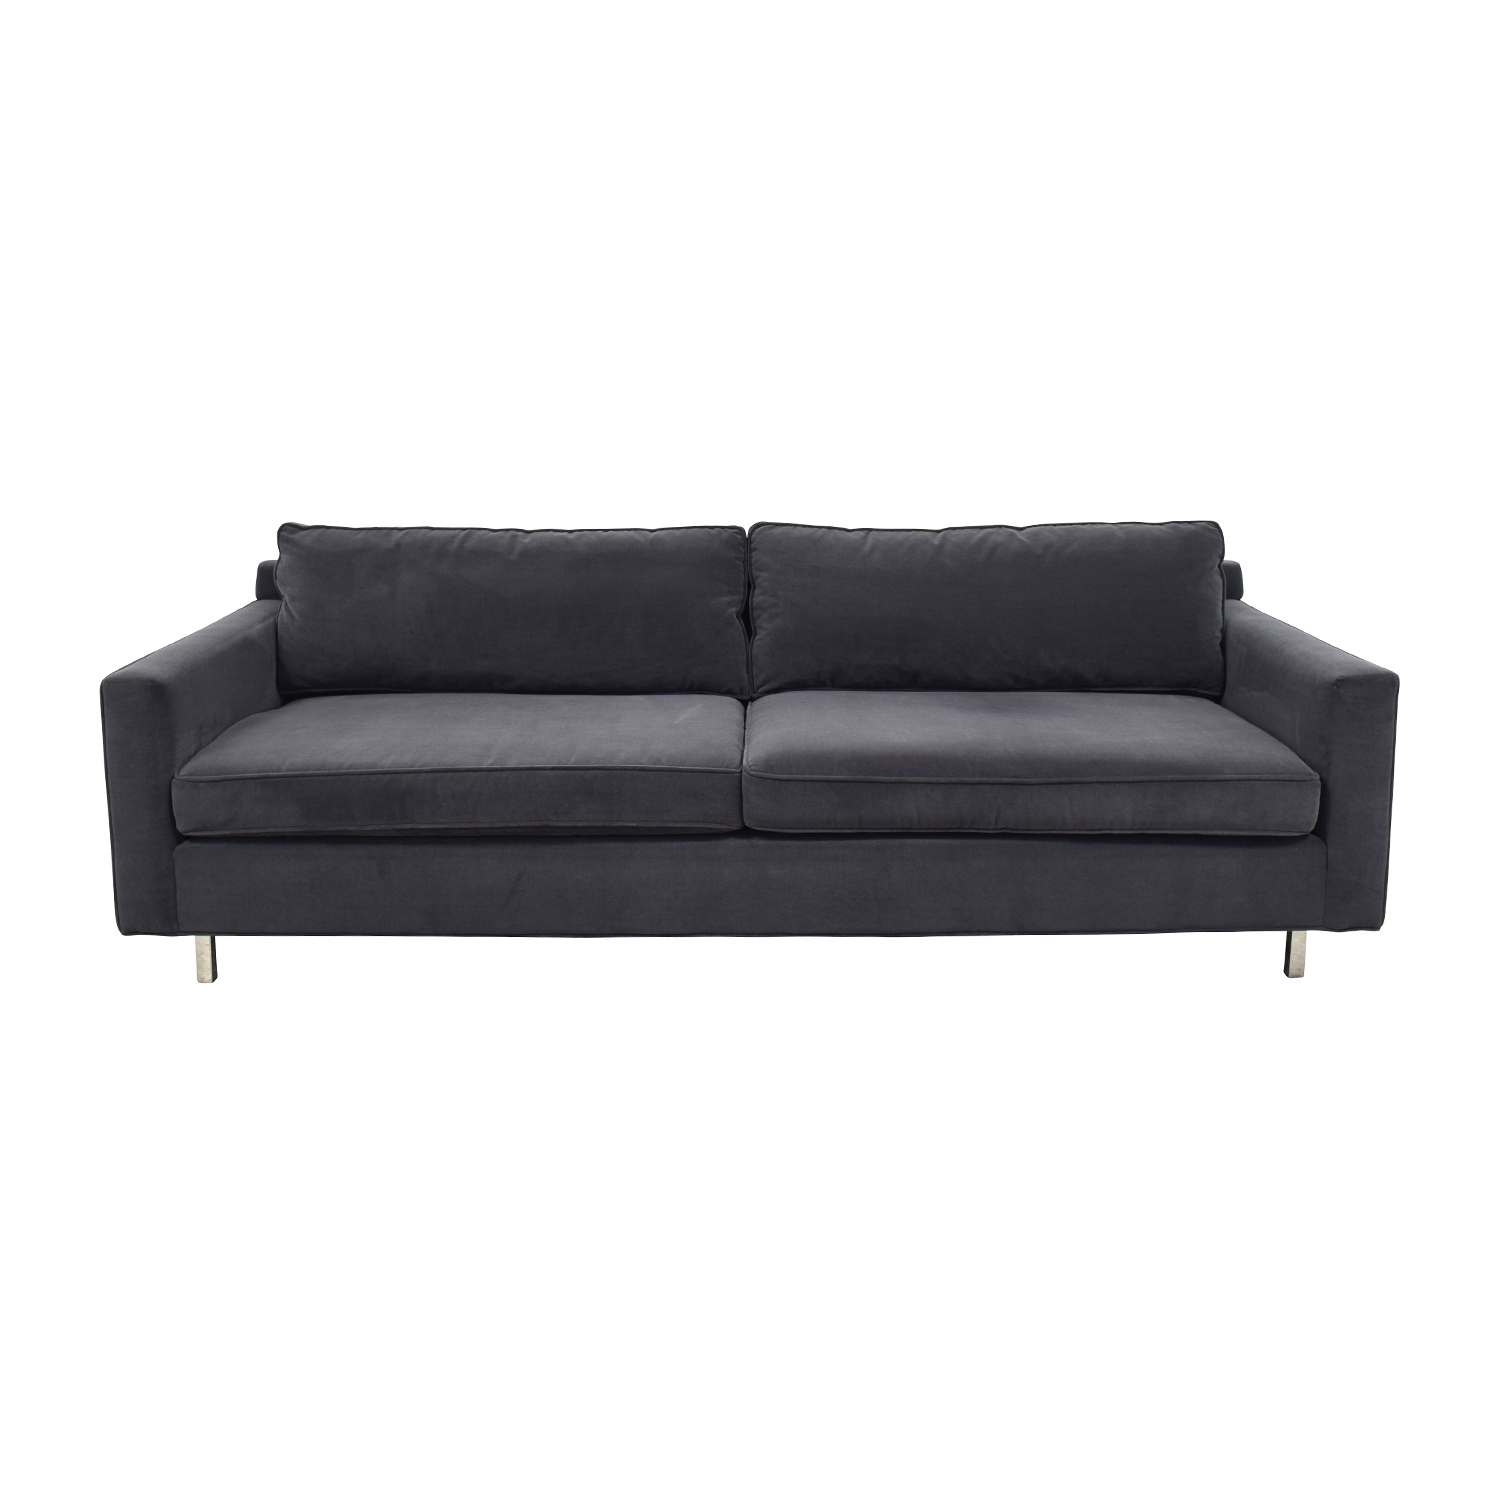 Mitchell Gold + Bob Williams Mitchell Gold + Bob Williams Hunter Sofa for sale